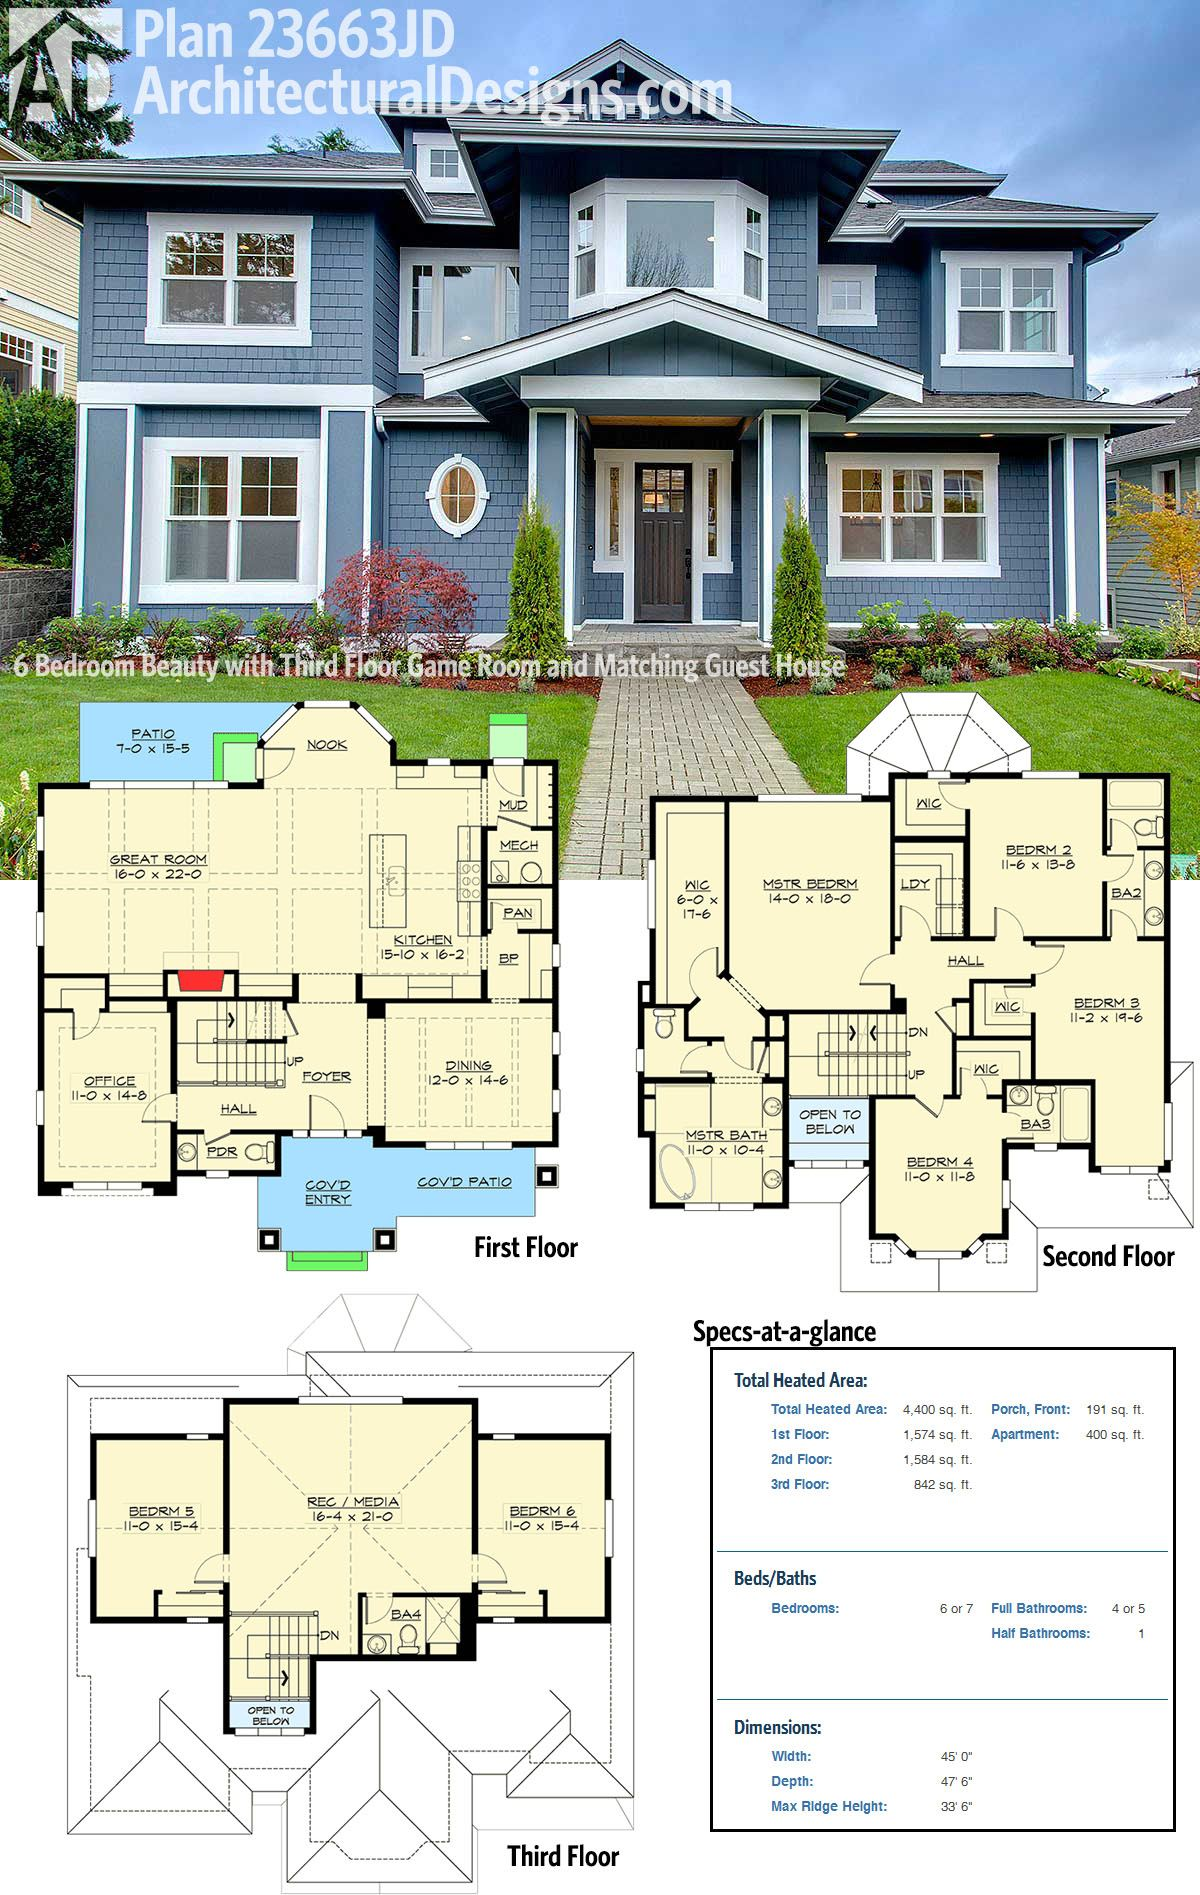 Plan 23663jd 6 bedroom beauty with third floor game room for 4 bedroom house to build